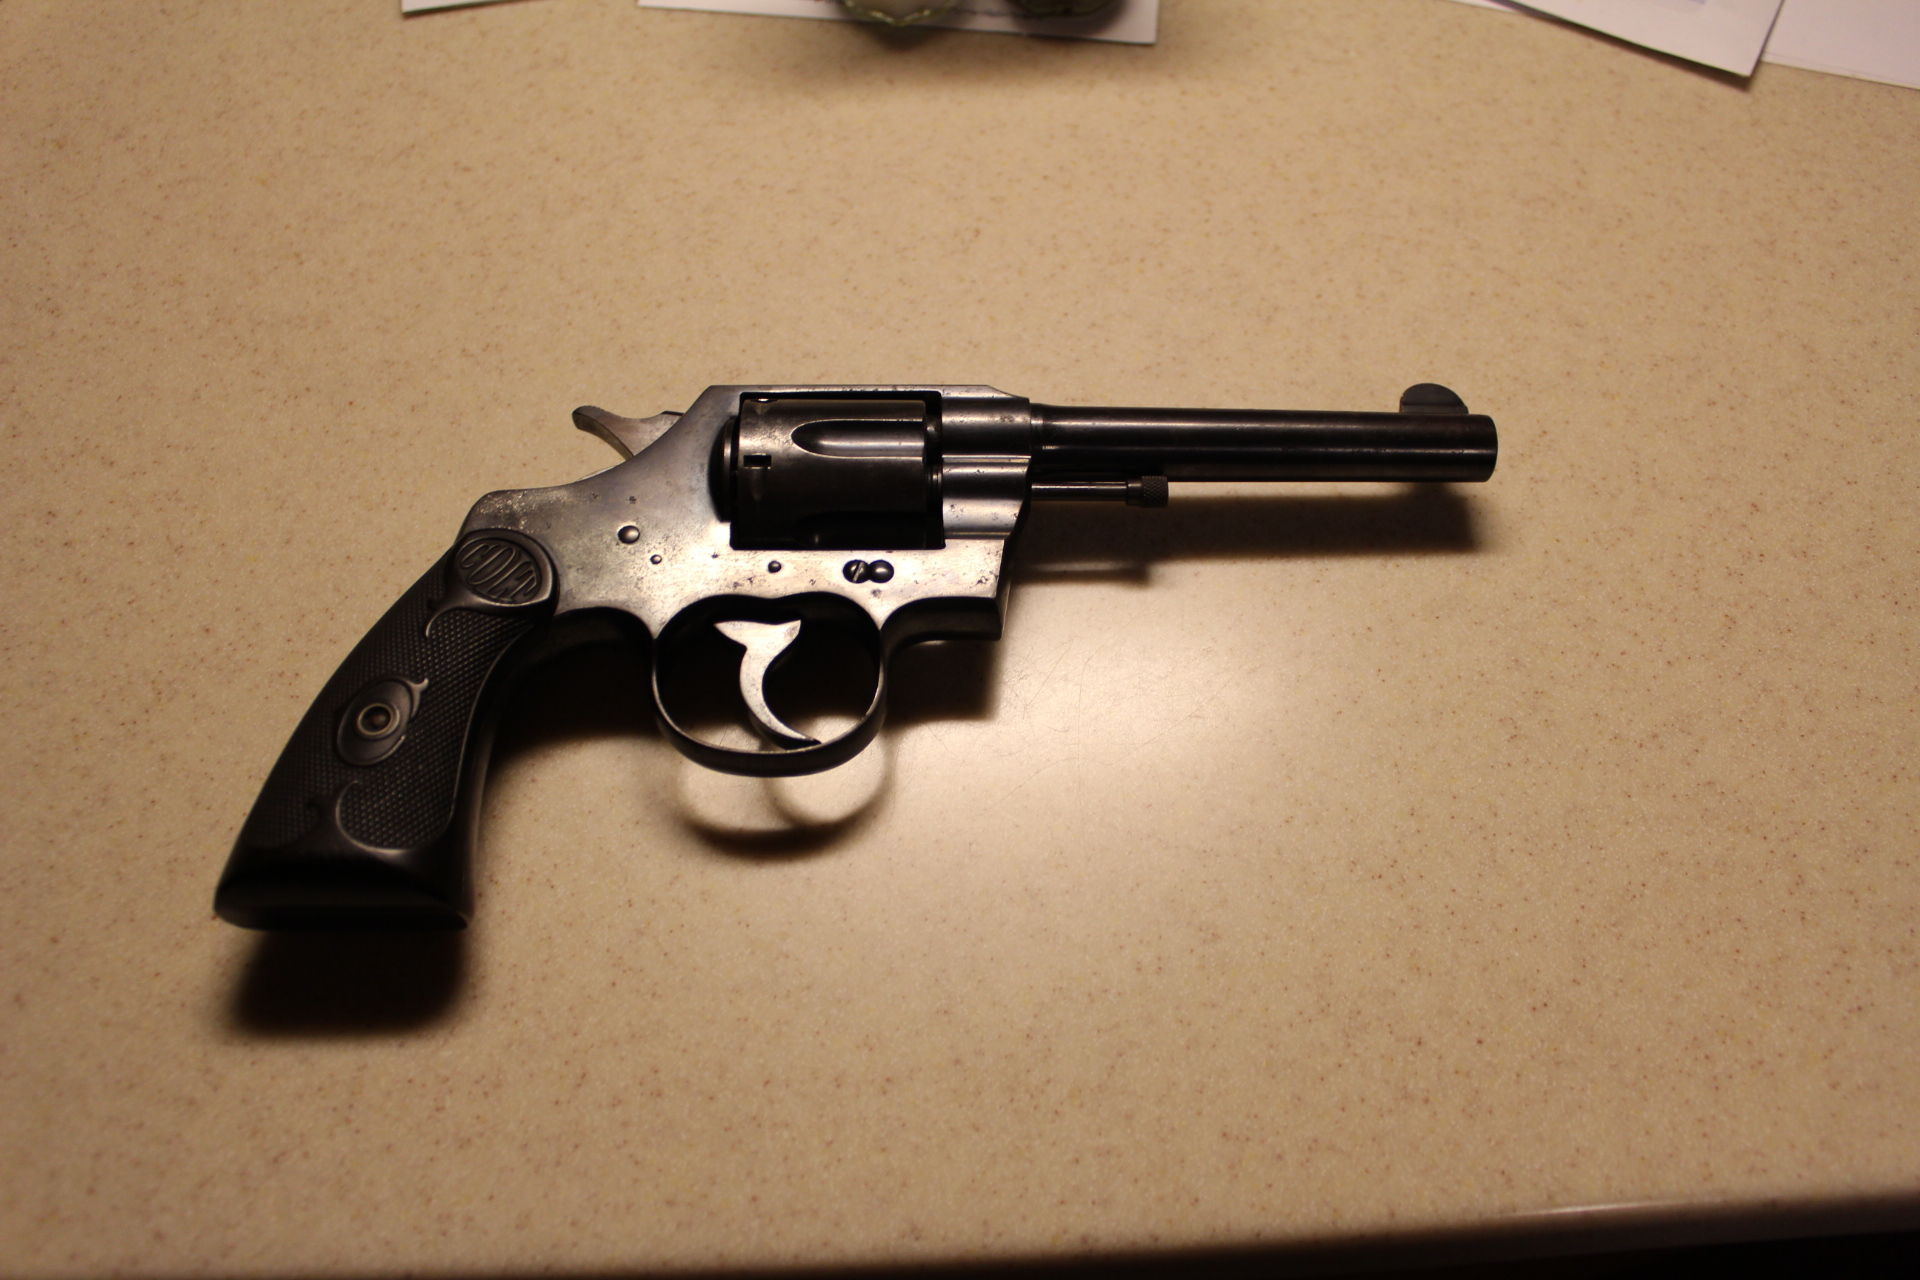 Share some Colt love - a picture thread-colt_as_r.jpg